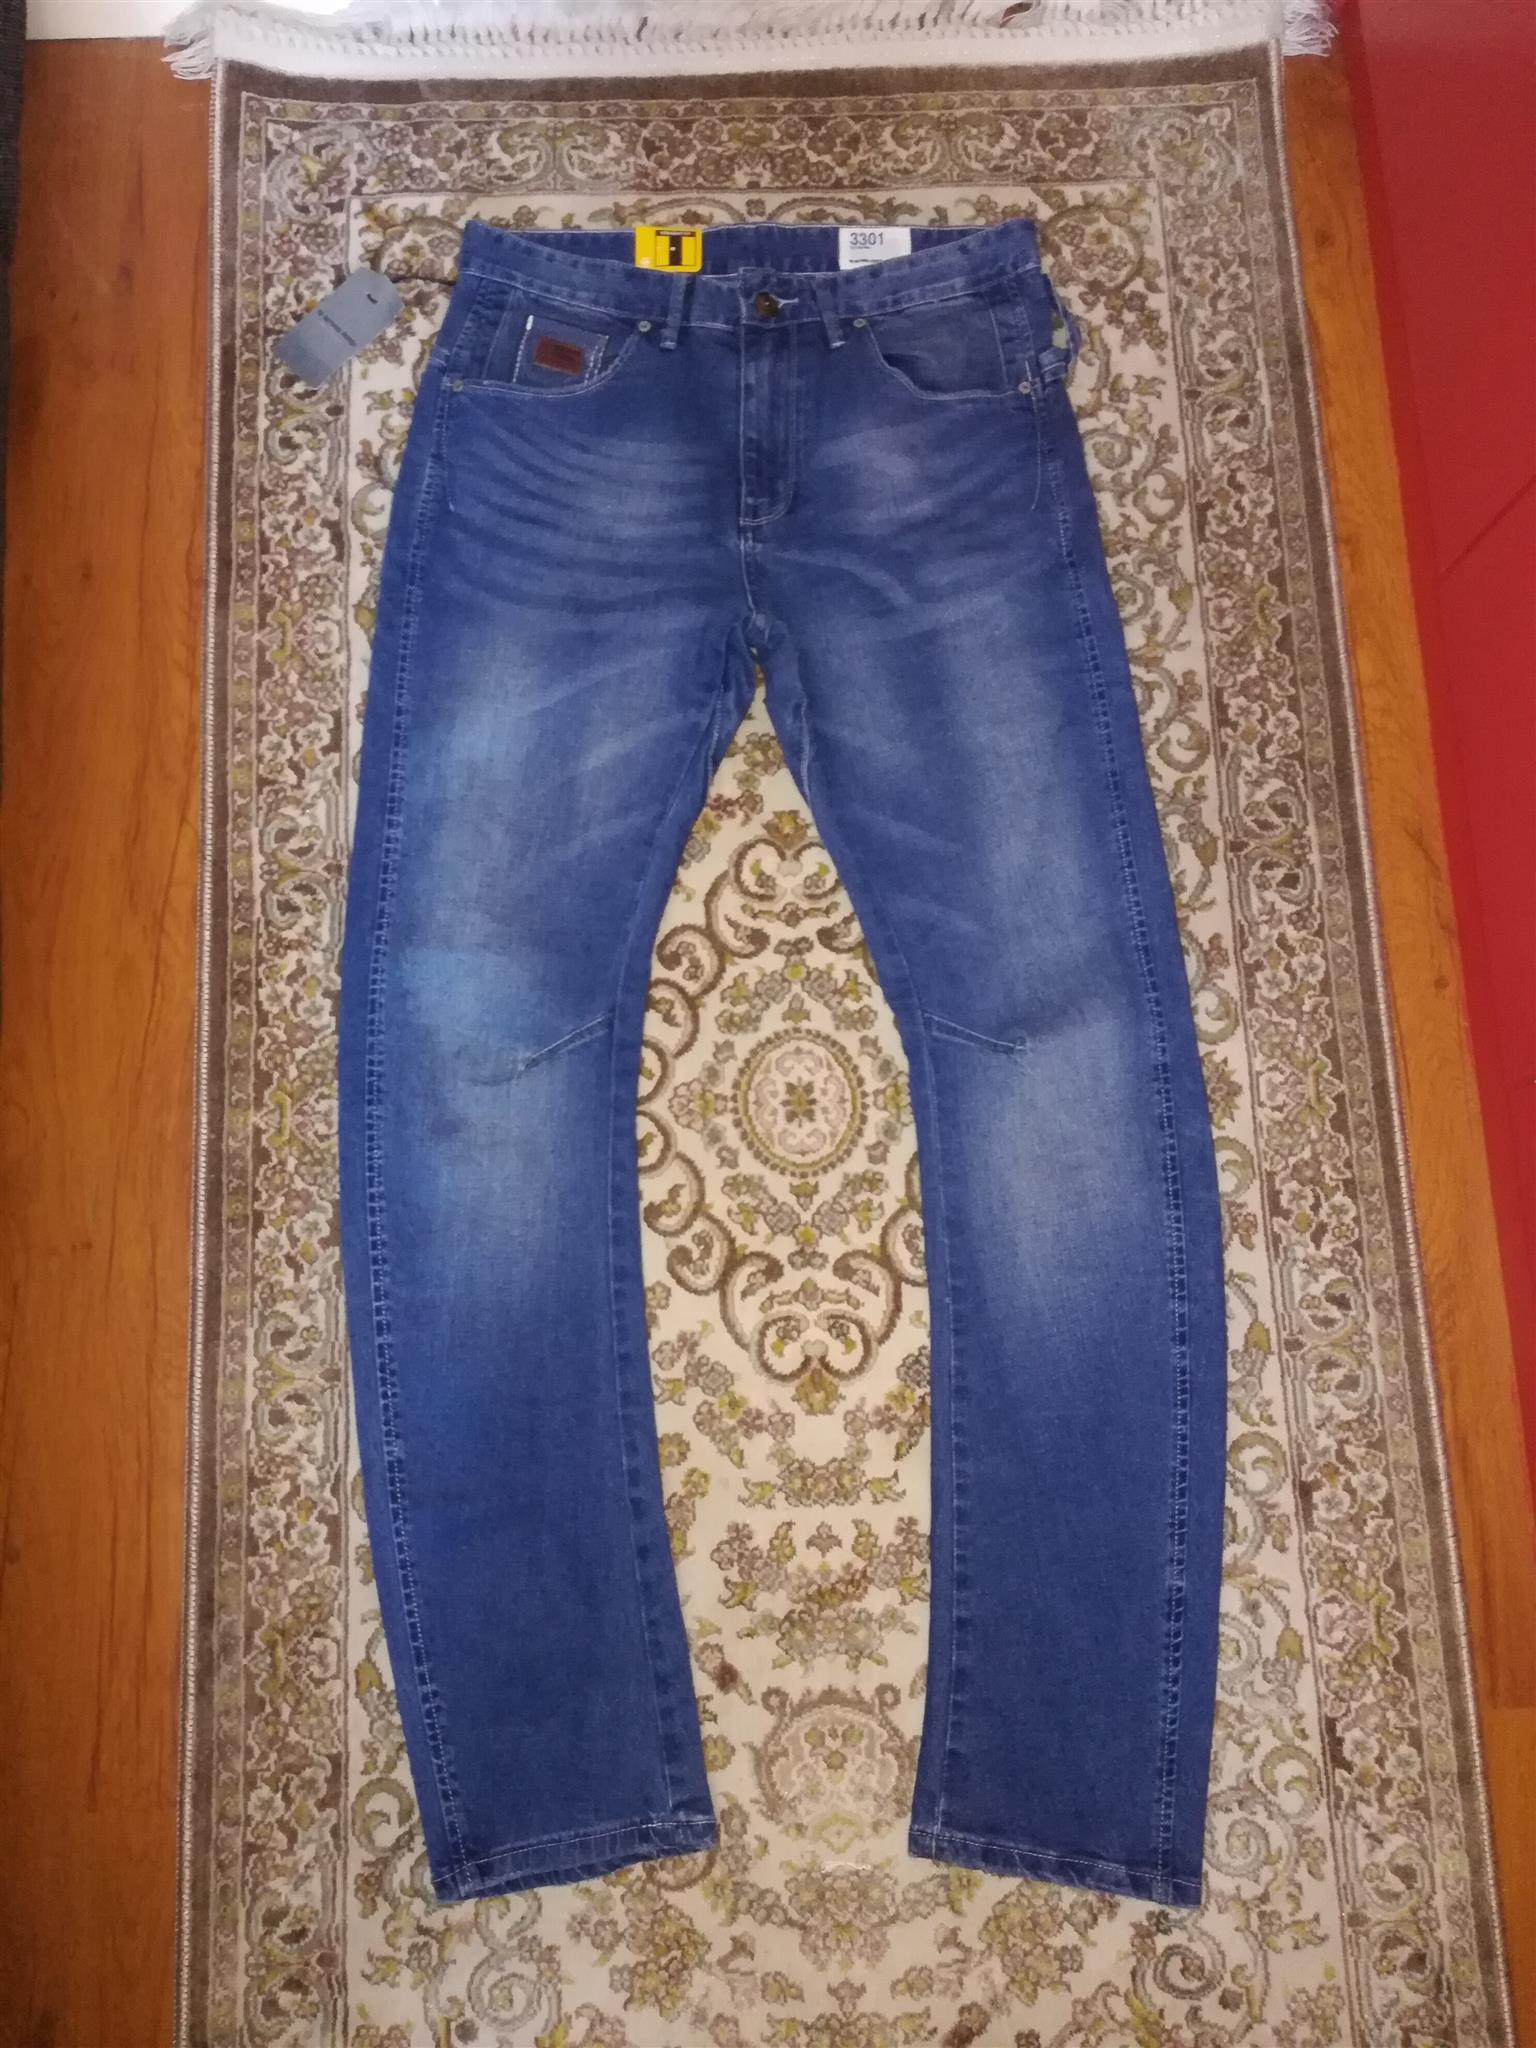 Diesel, G-Star and Armani AAA jeans and joggers R850